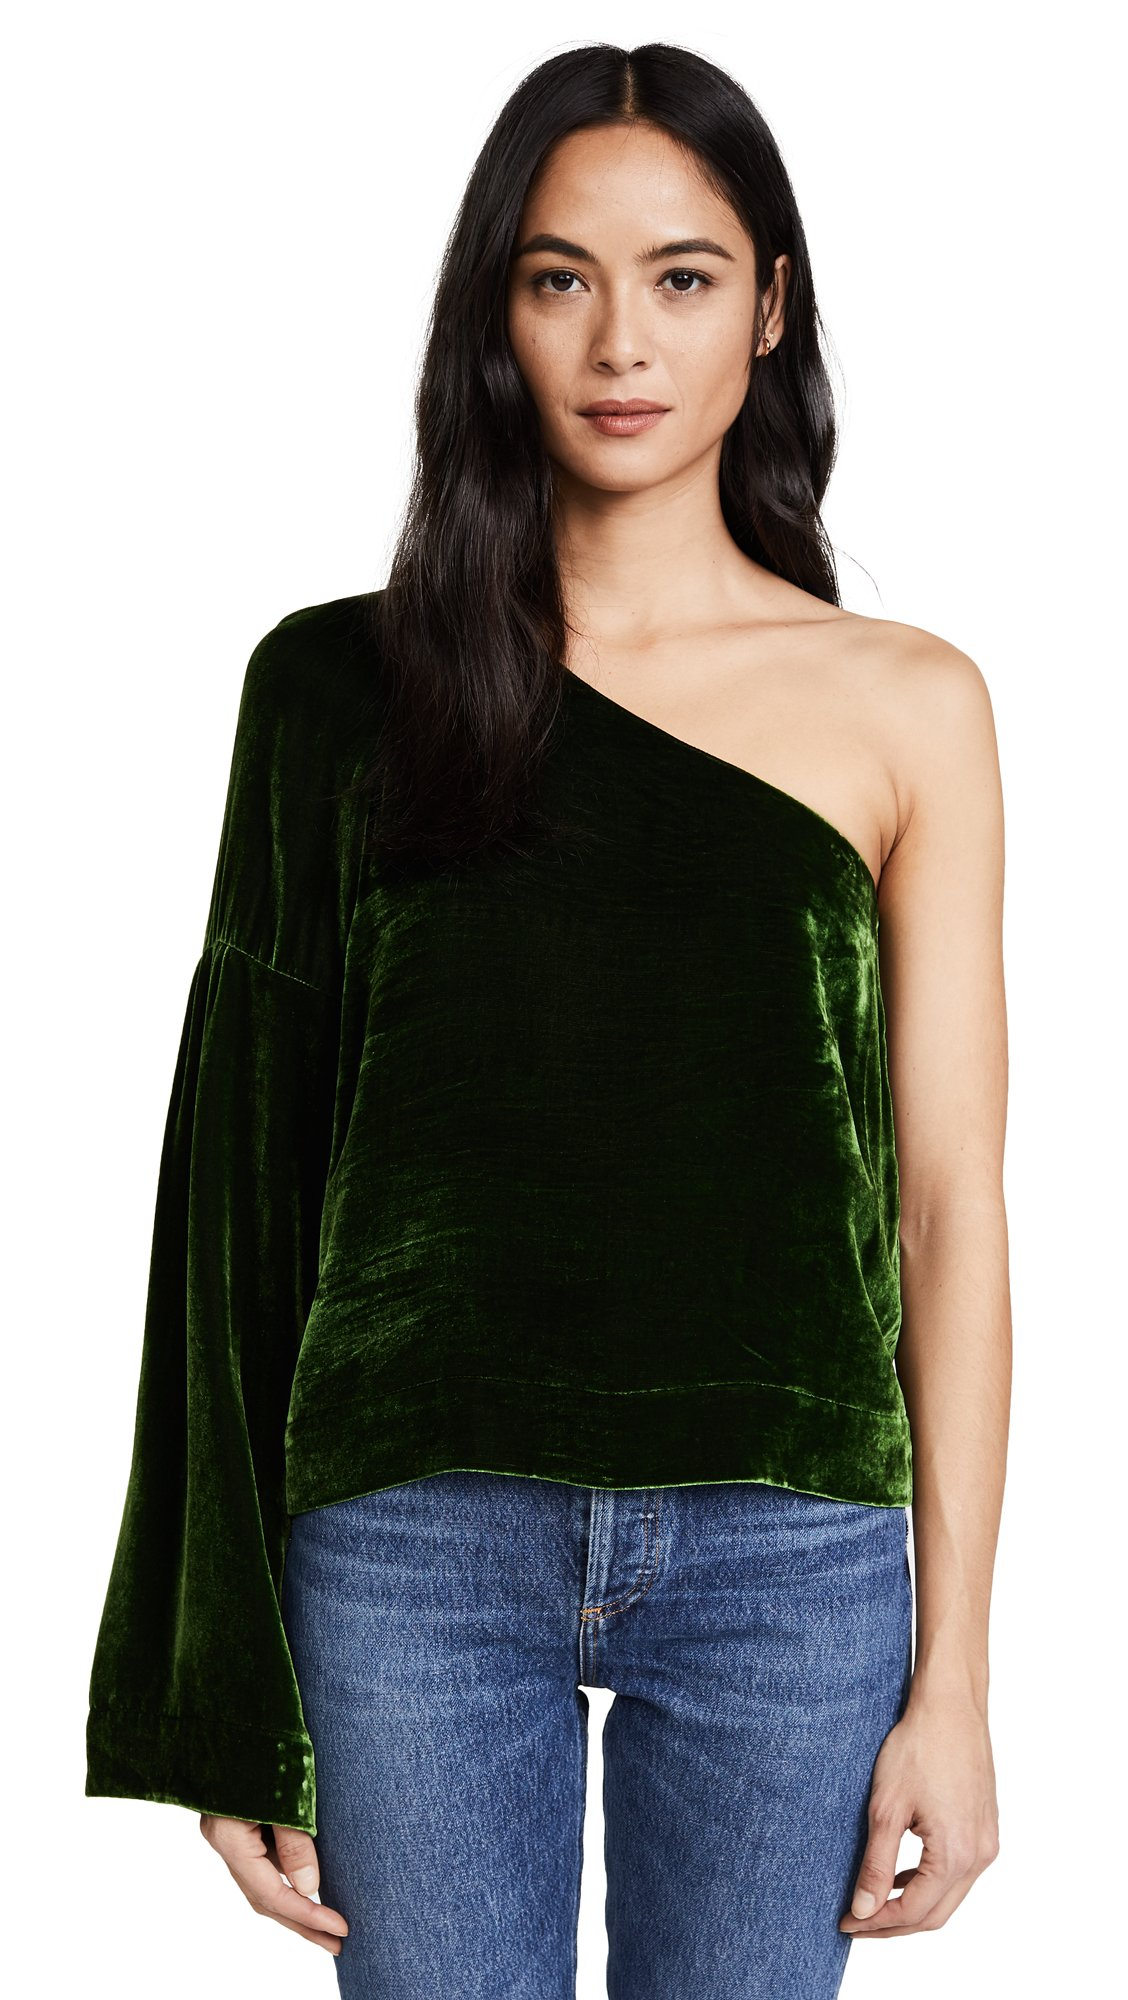 VEDA Women's Glass Top, Emerald Green, Small by VEDA